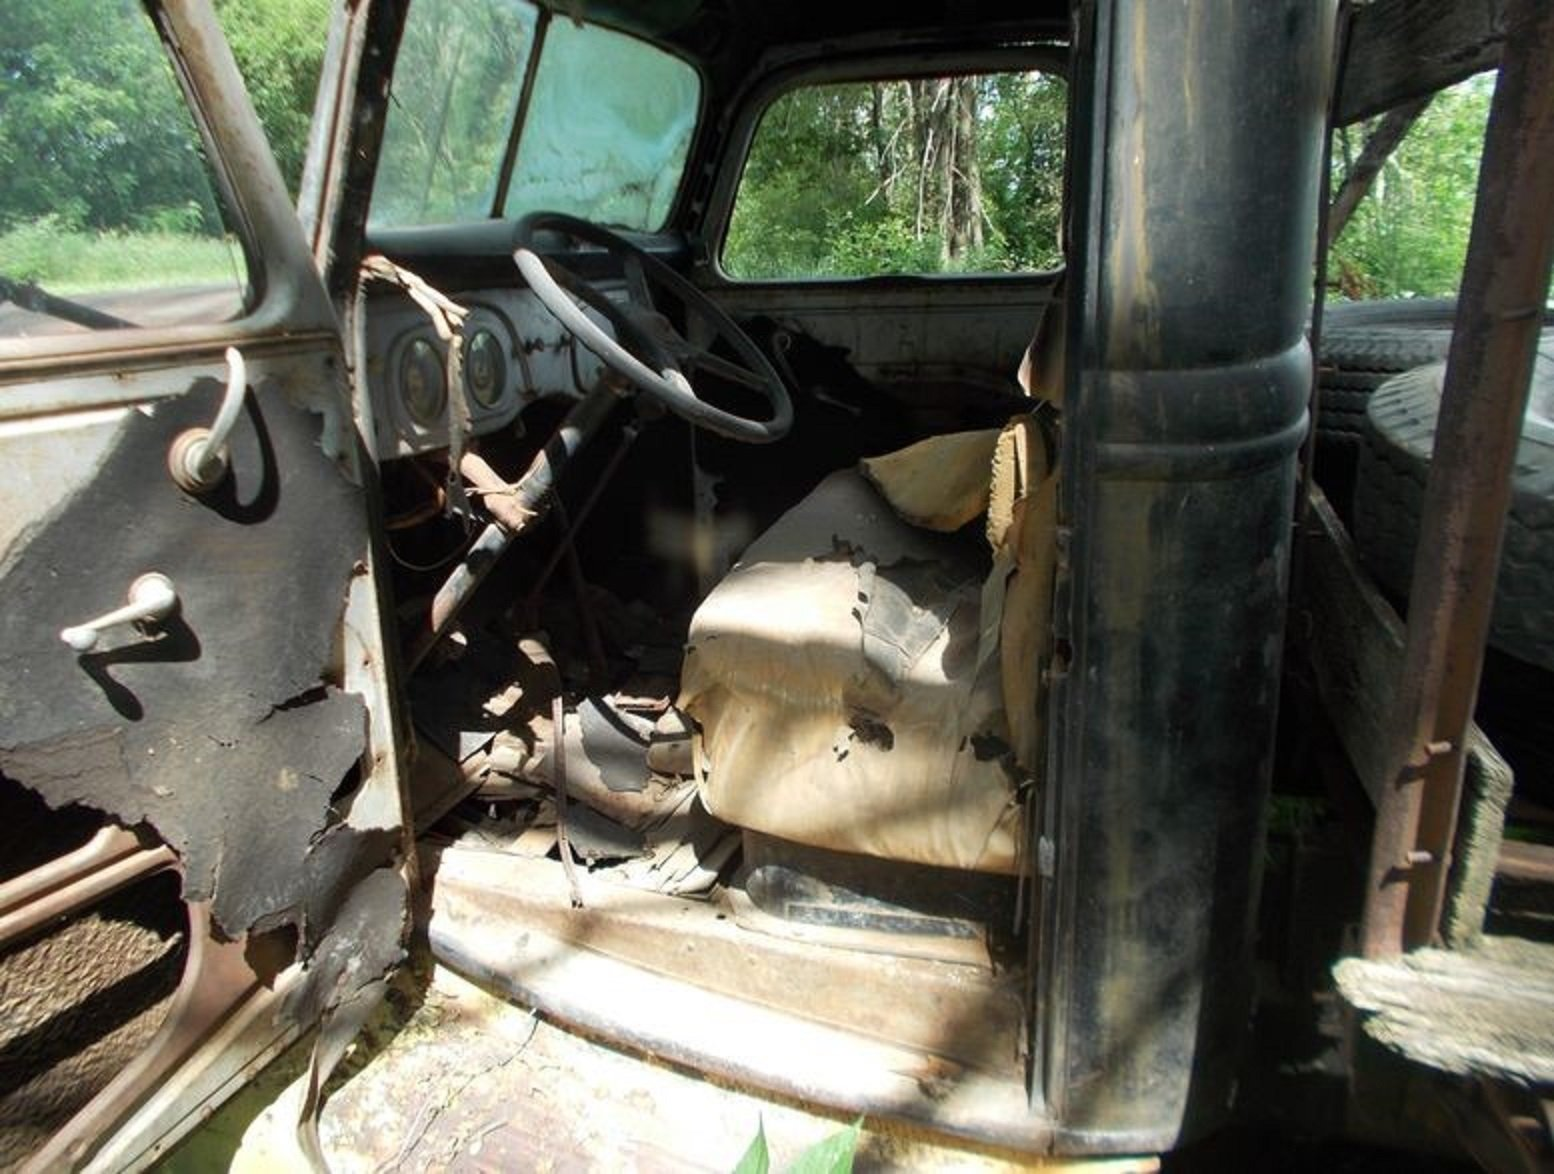 1937 Ford 1 Ton Flat Bed Truck For Sale (picture 3 of 4)